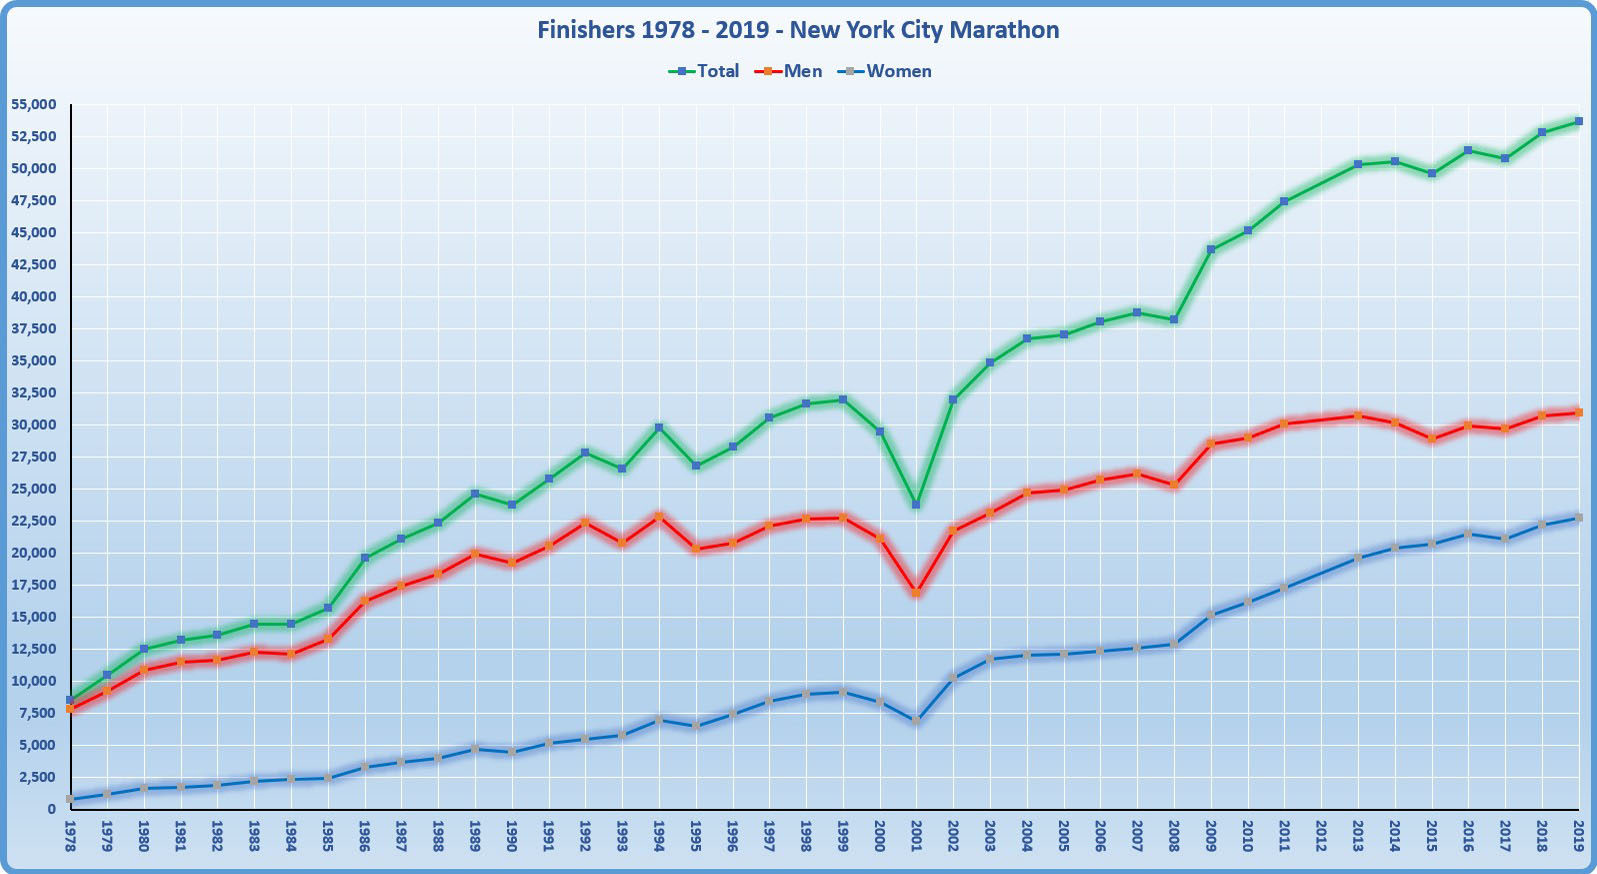 Number of finishers 1978 - 2018